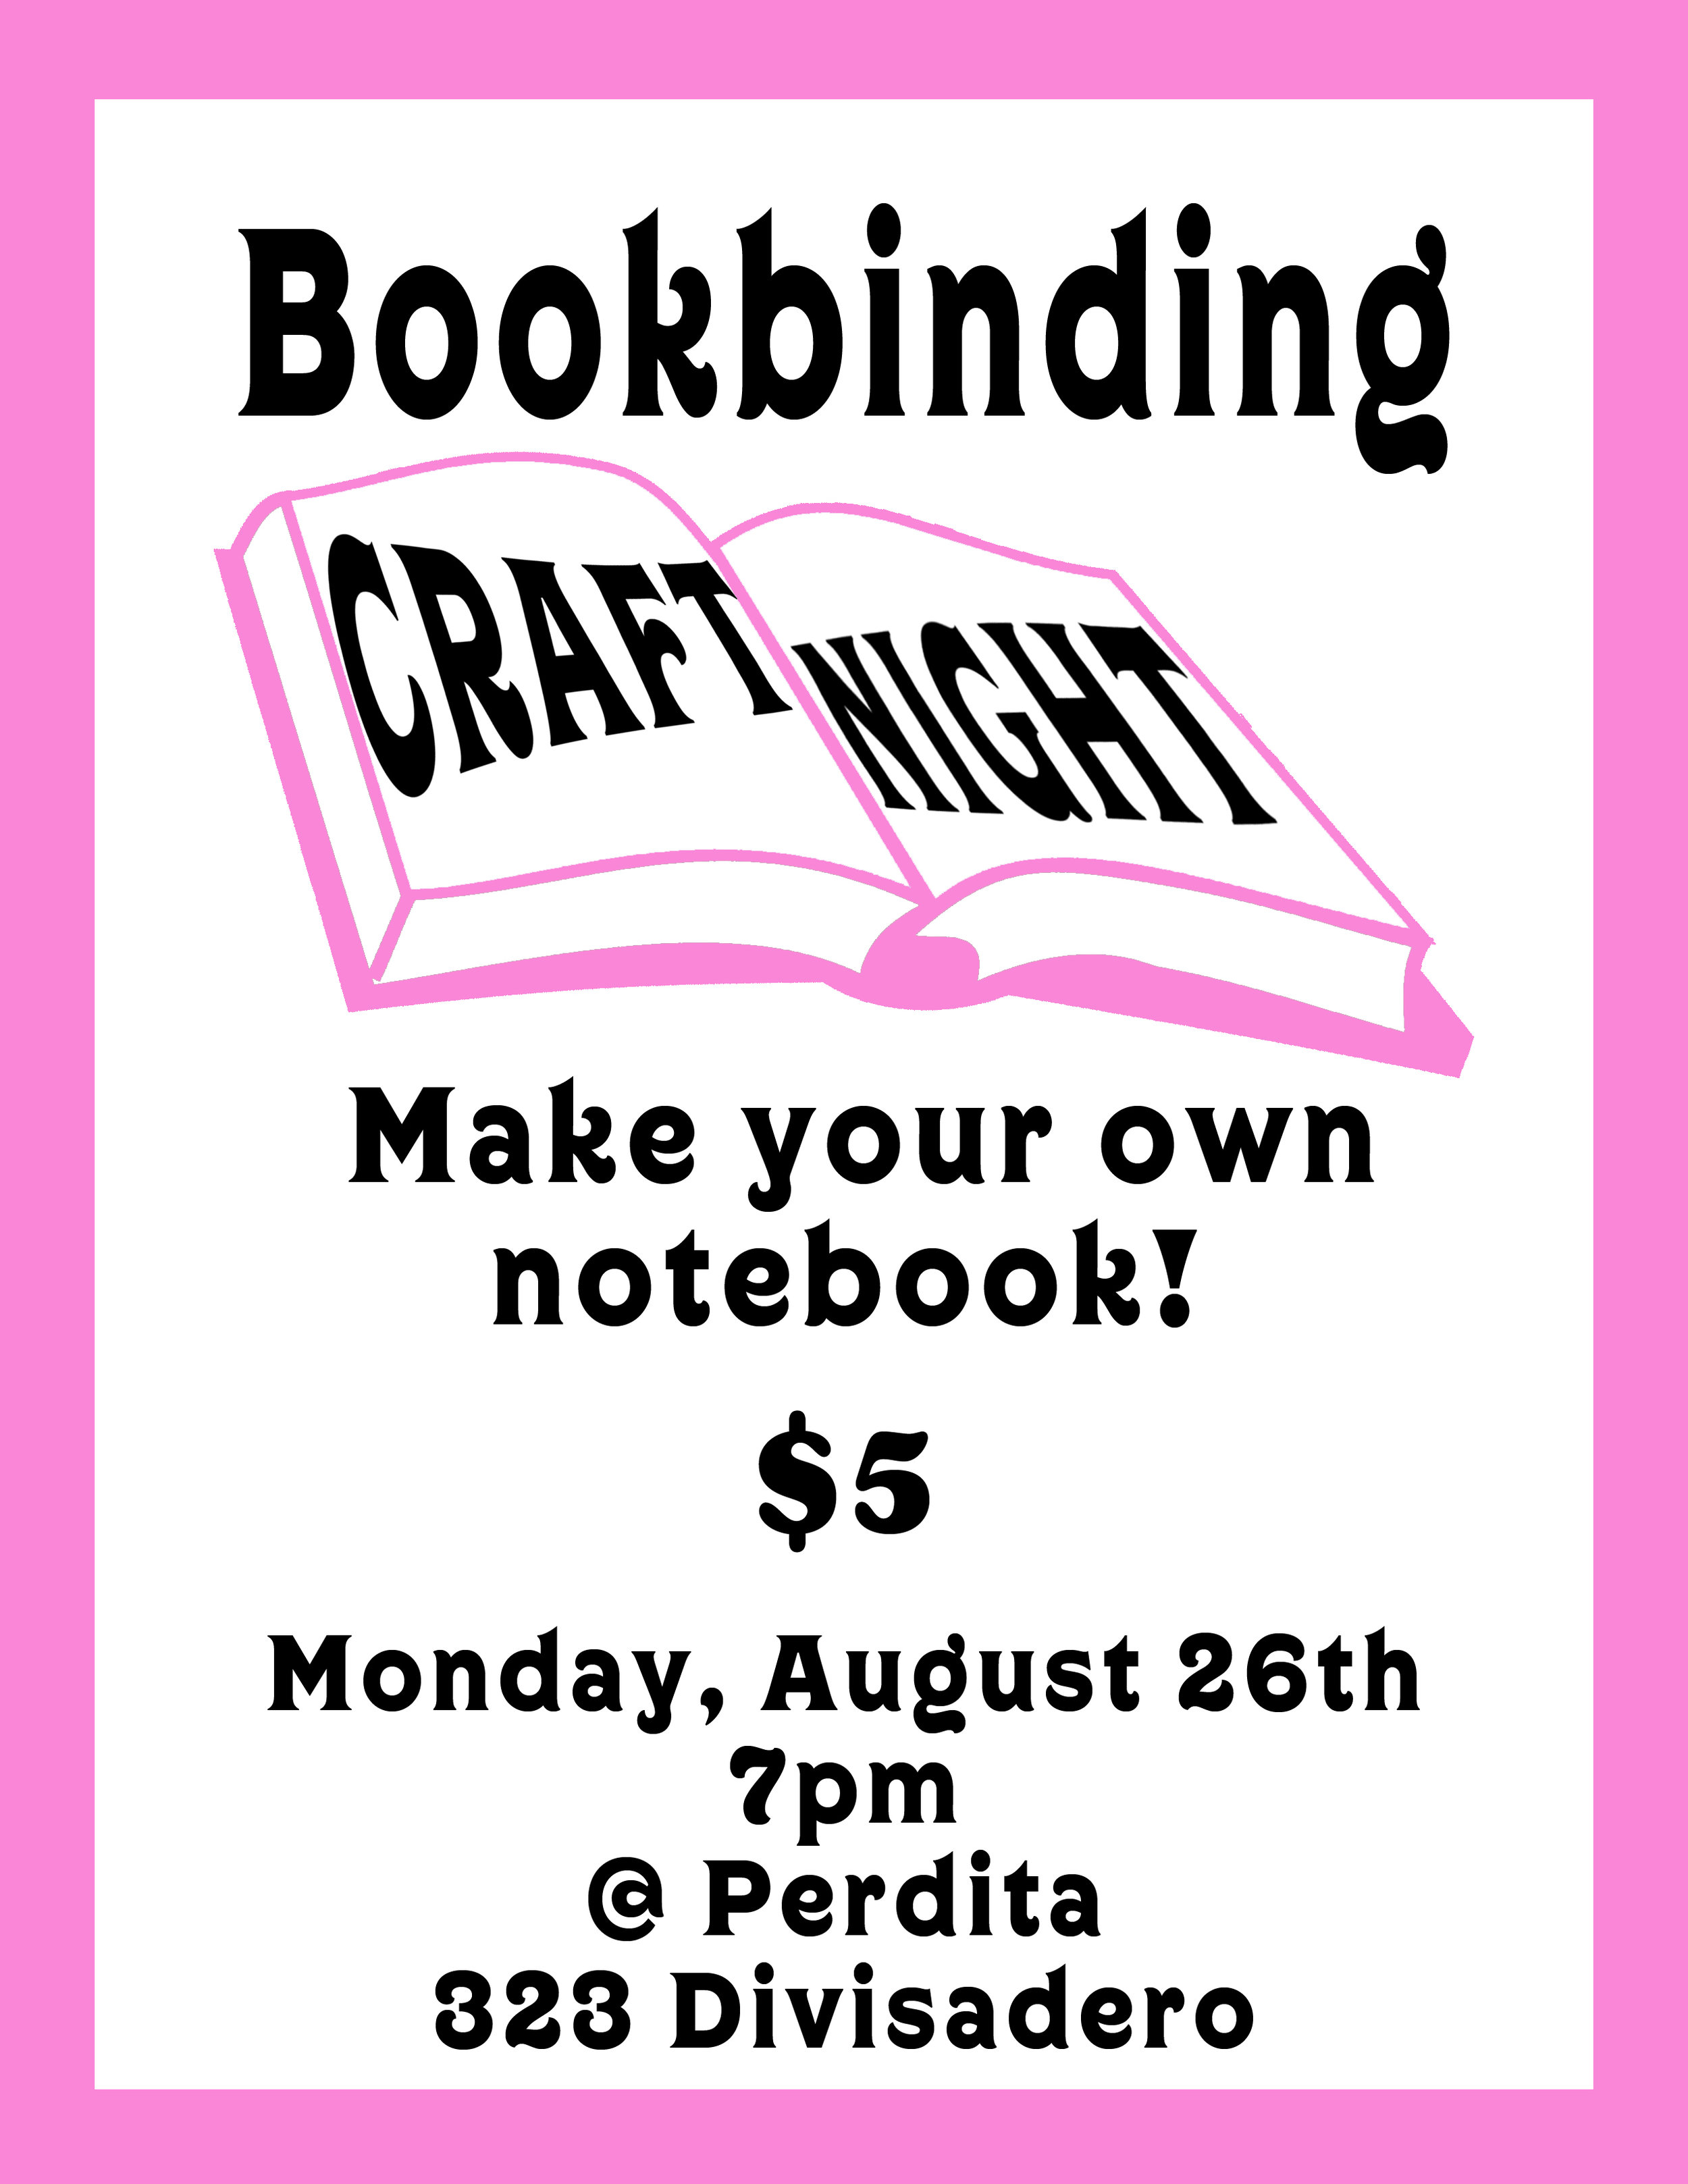 craft night bookbinding flier 2.jpg